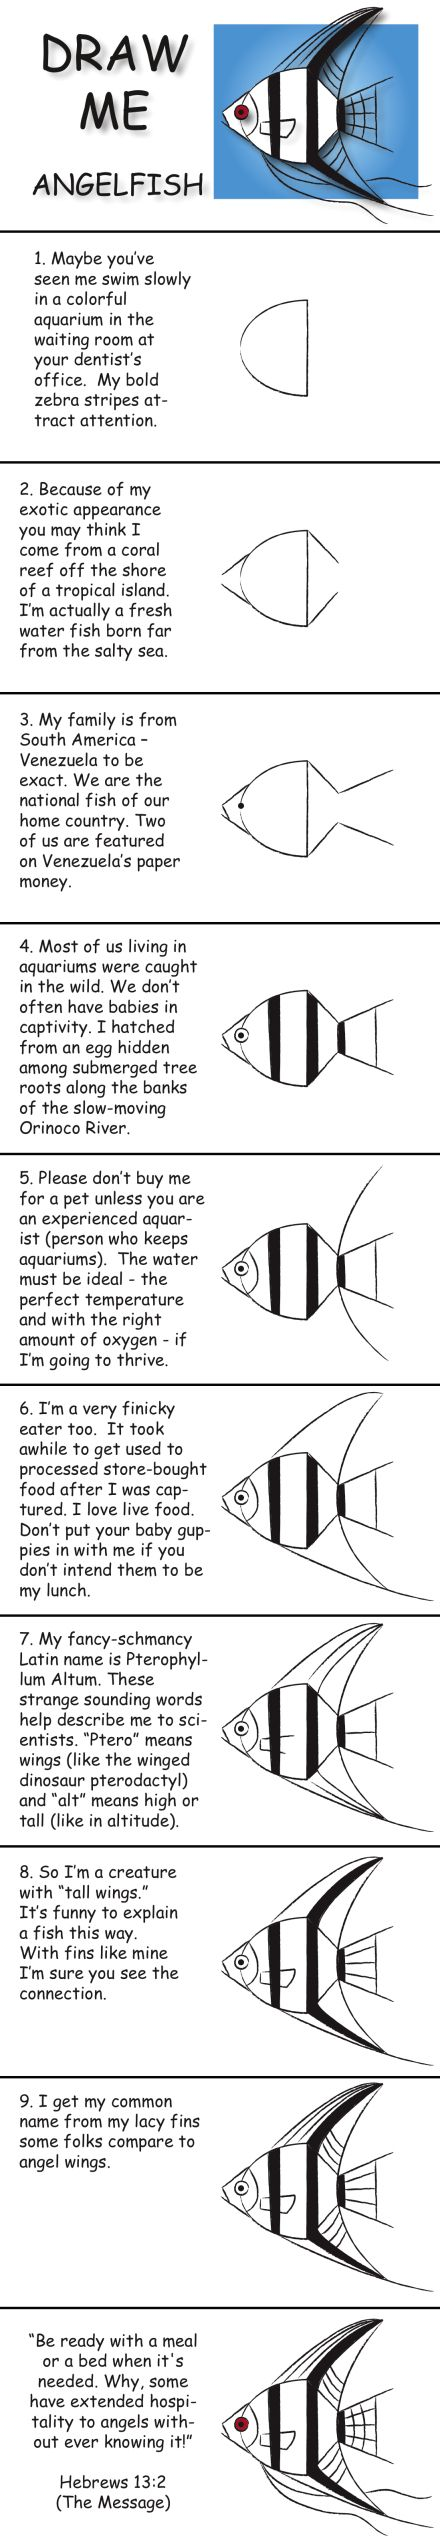 Draw an angelfish in 10 easy steps and learn fun facts about its life. © 2013